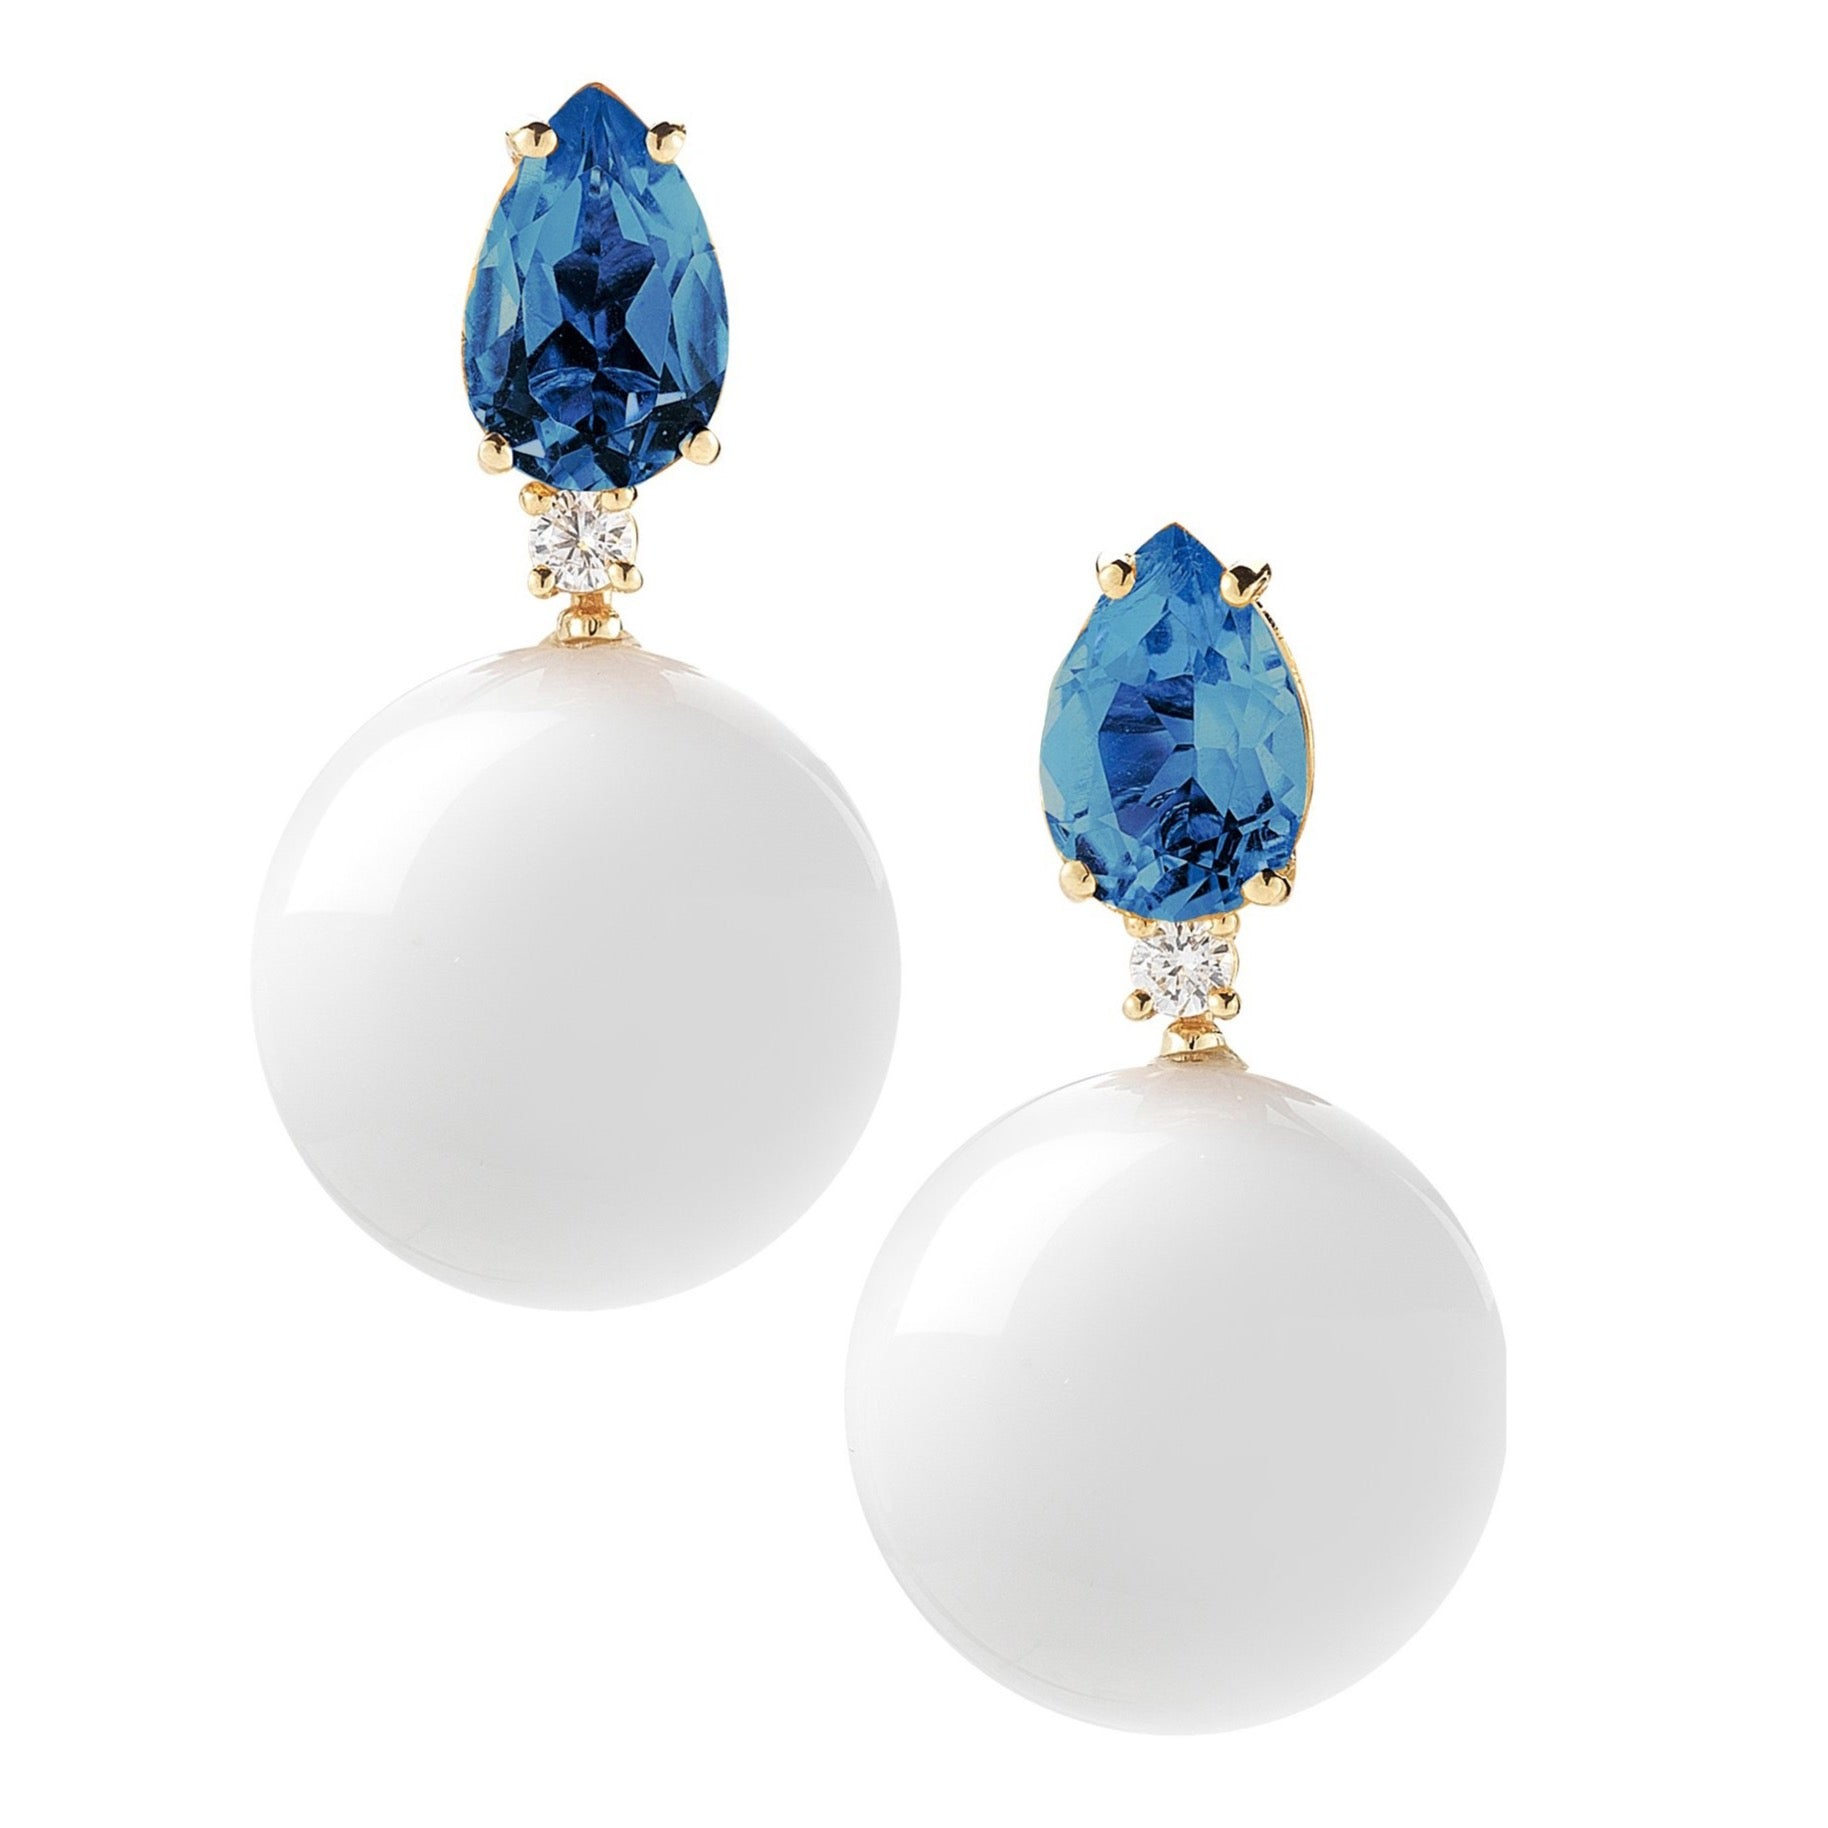 A-FURST-BONBON-DROP-EARRINGS-WHITE-AGATE-LONDON-BLUE-TOPAZ-DIAMONDS-O1200GULKO